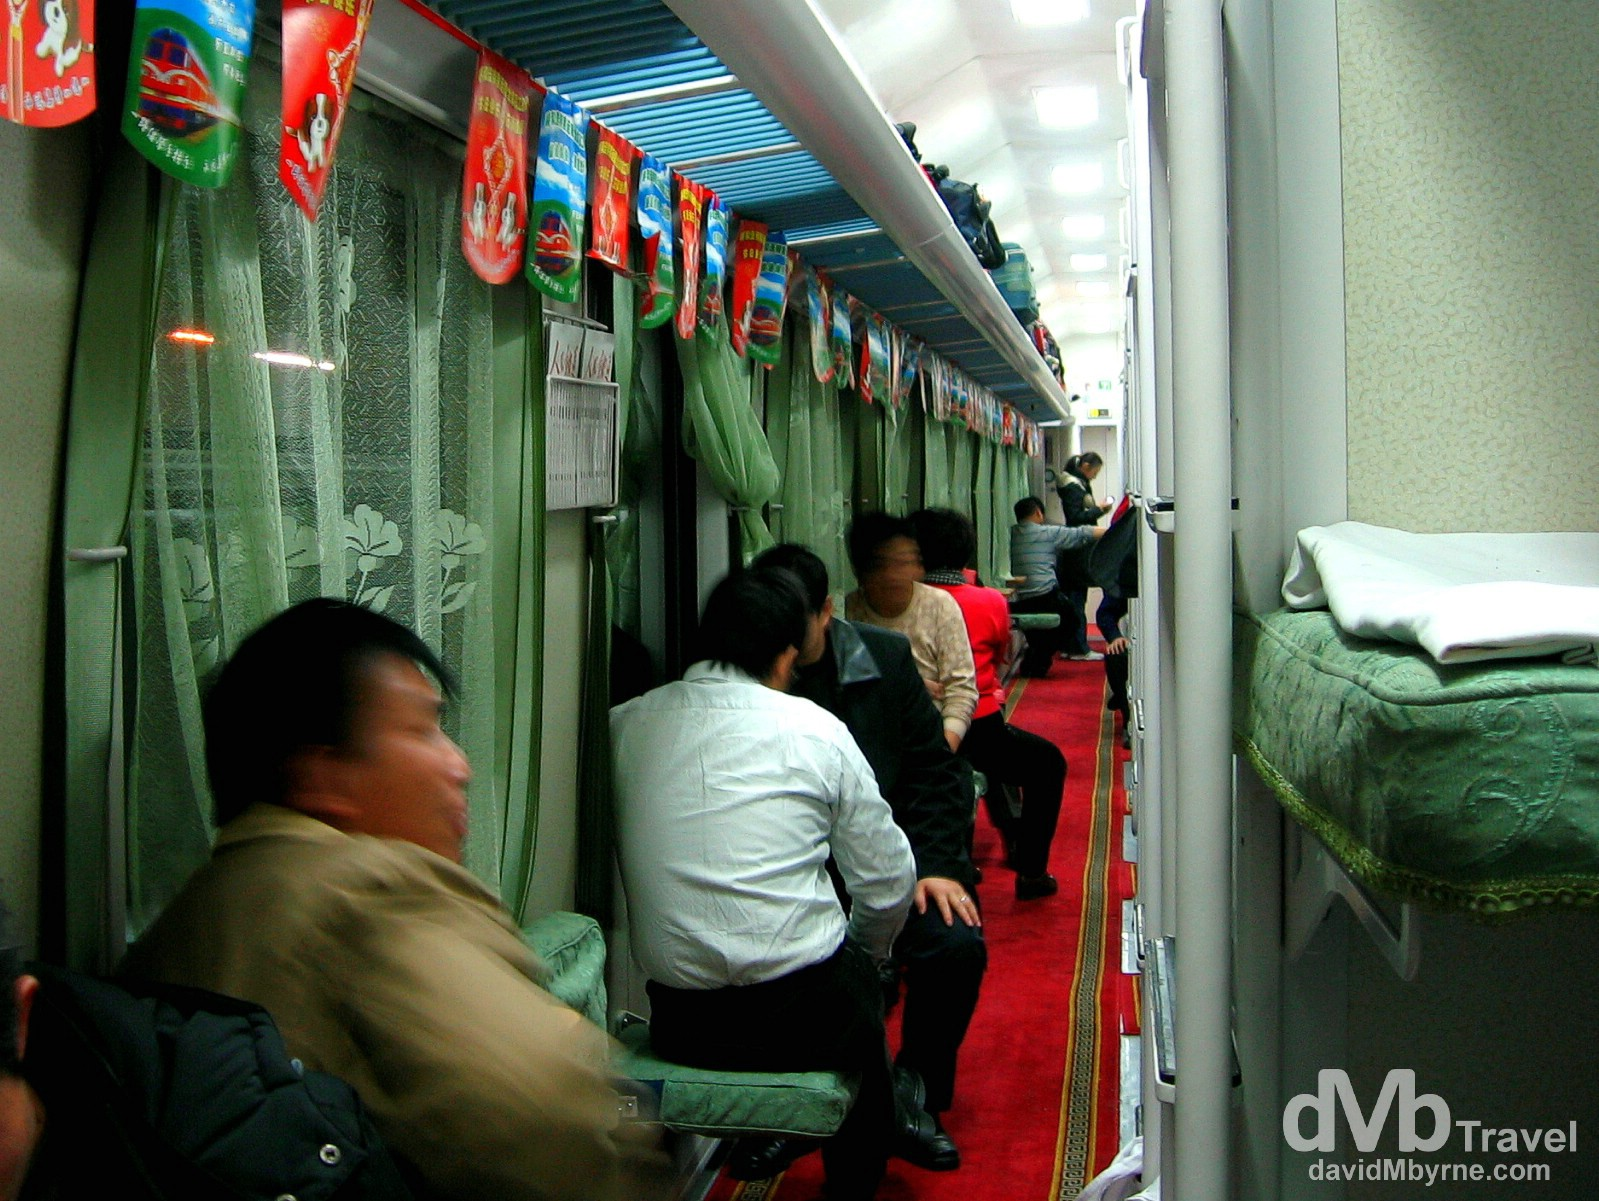 Hard Sleeper class carriage on the train from Beijing to Hohhot, China, February 11, 2006.